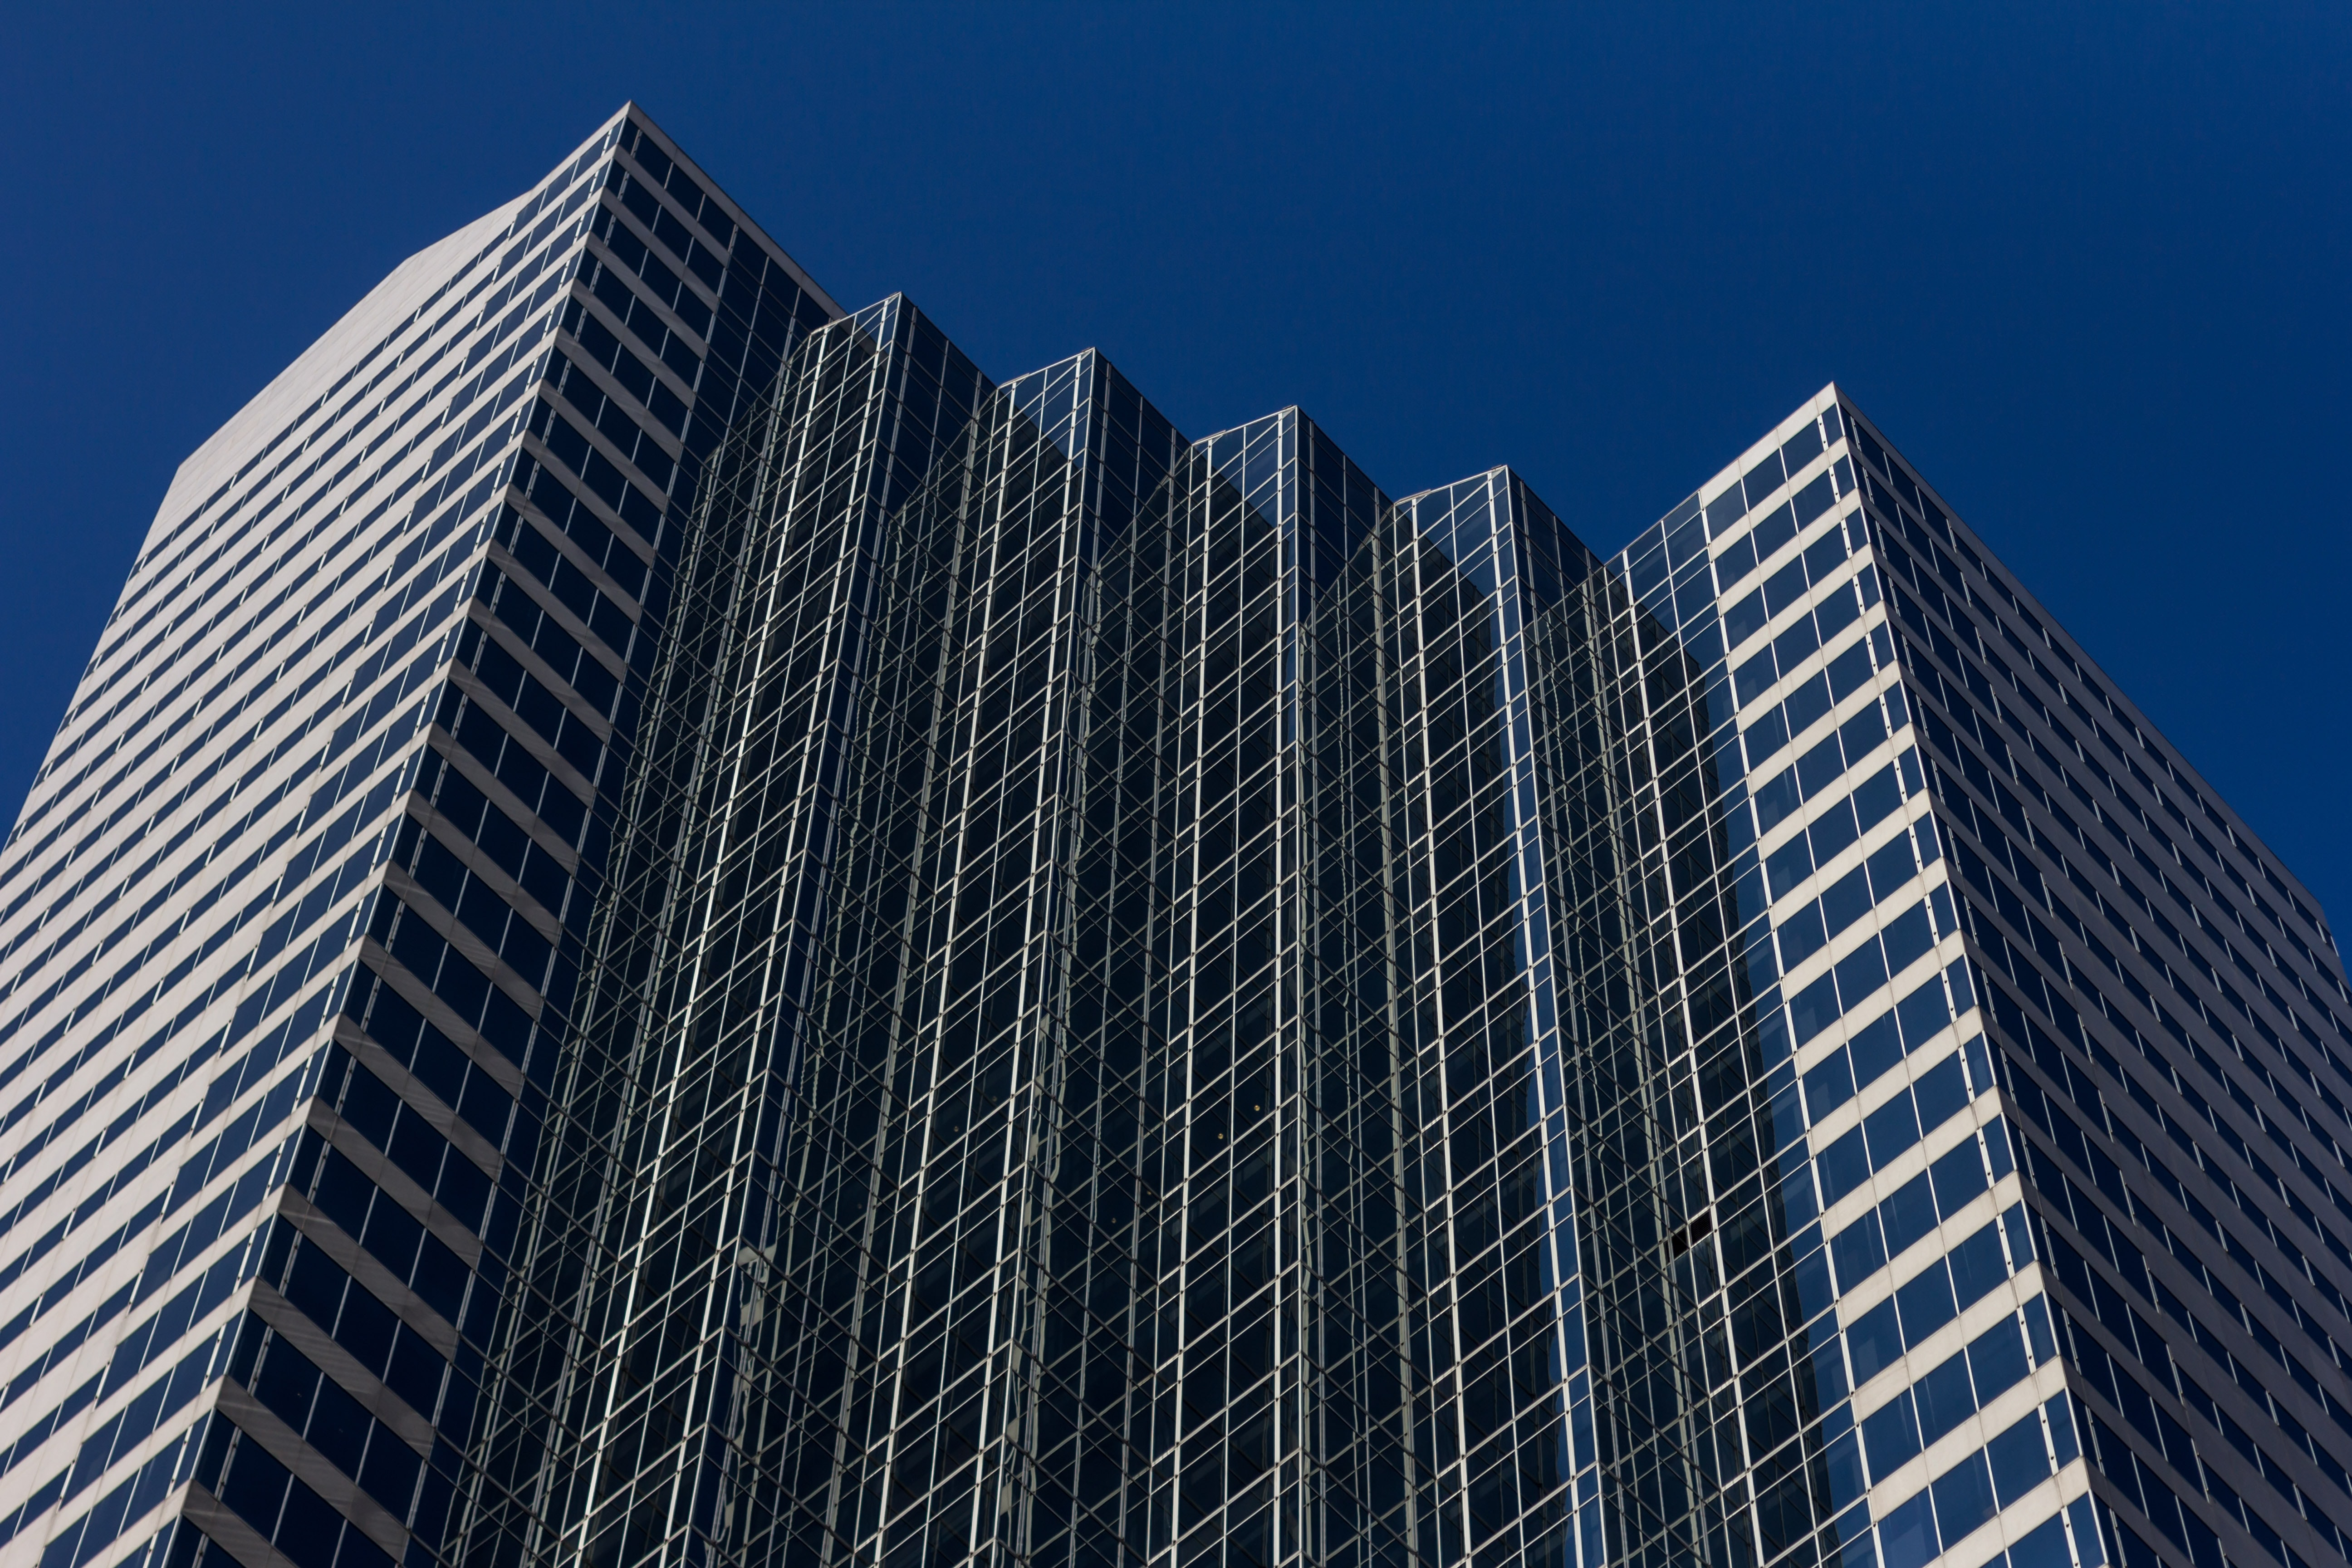 low angle photo of curtain wall building at daytime